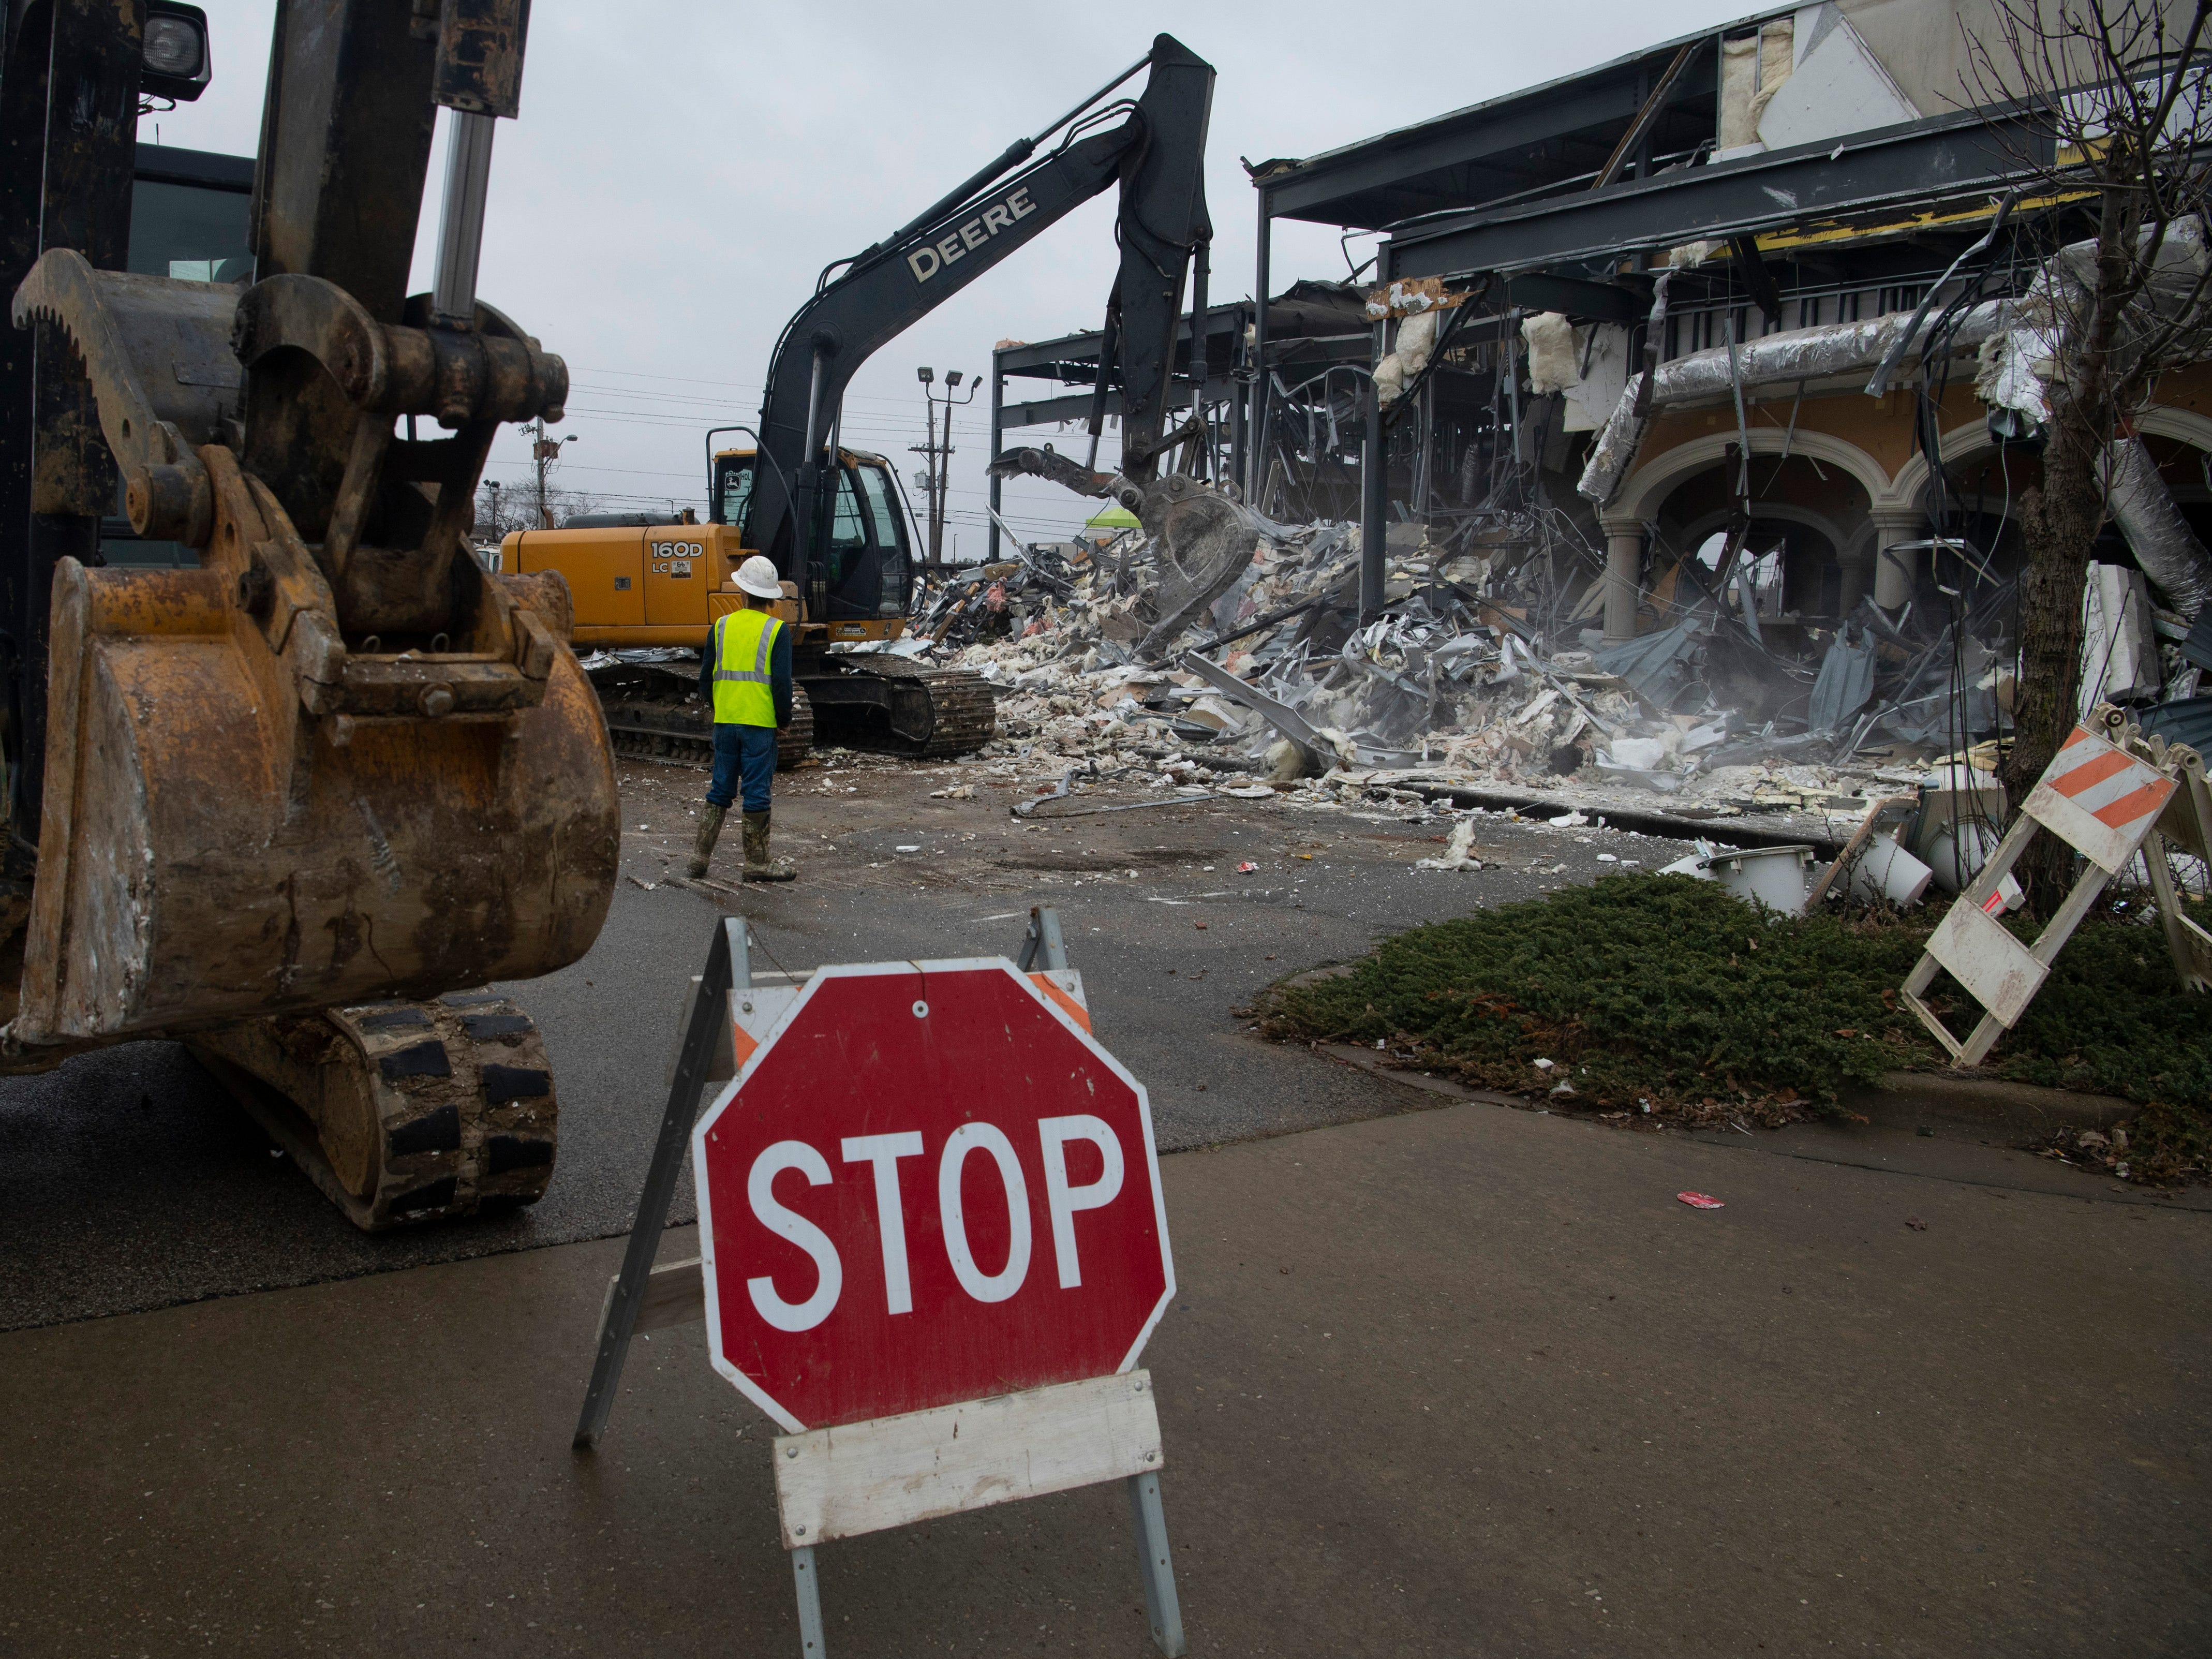 Lance Hollum with Stemaly Excavations keep the area clear as excavator operator John Hay continues the demolition of the old Nieto's Mexican Express at 1000 N. Green River Road Monday afternoon. The demolition project will make way for a new restaurant, BJ's Restaurant & Brewhouse, which will open sometime this year.